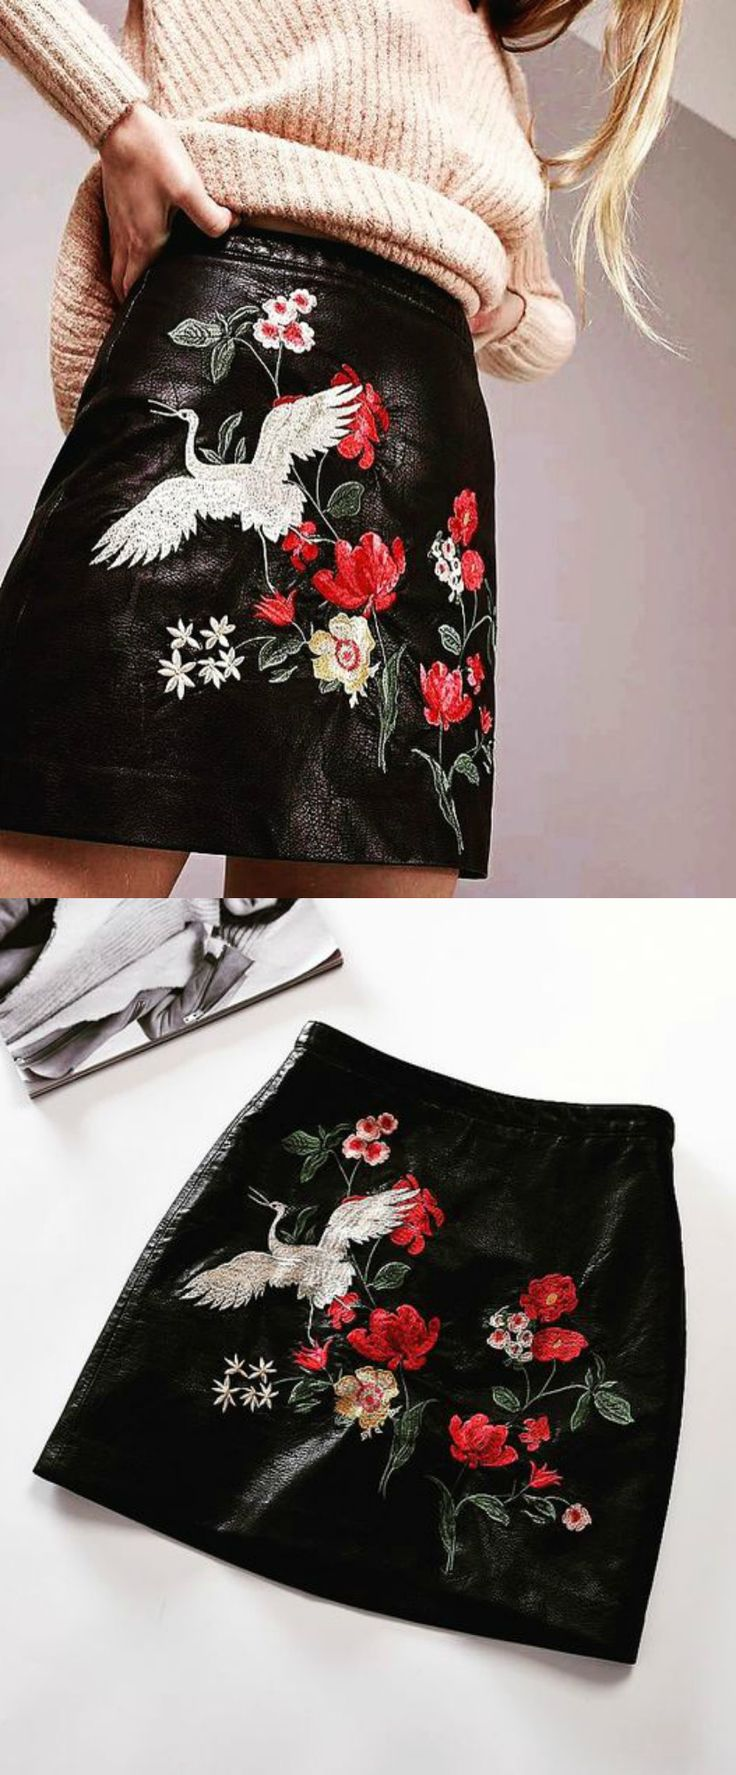 A Gypsy Style Leather Skirt is now available at $45 from Pasaboho. ❤️  This skirt exhibit beautiful embroidery patterns.  Available for Wholesale and Retail. :: boho fashion :: gypsy style :: hippie chic :: boho chic :: outfit ideas :: boho clothing :: free spirit :: fashion trend :: embroidered :: flowers :: floral :: lace :: summer :: fabulous :: love :: street style :: fashion style :: boho style :: bohemian :: modern vintage :: ethnic tribal :: boho bags :: embroidery dress :: skirts